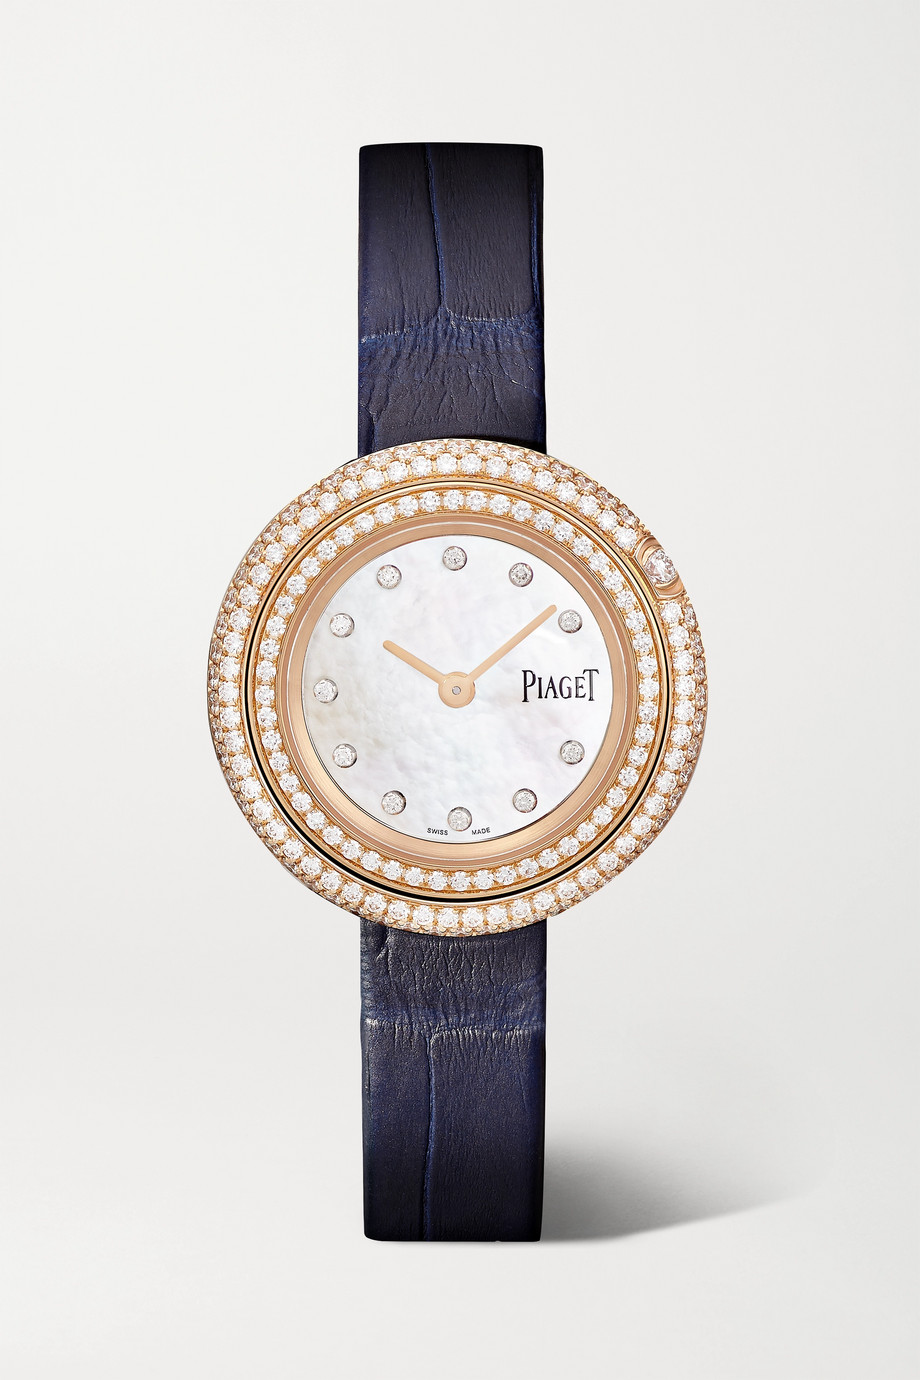 Piaget Possession 29mm 18-karat rose gold, alligator and diamond watch